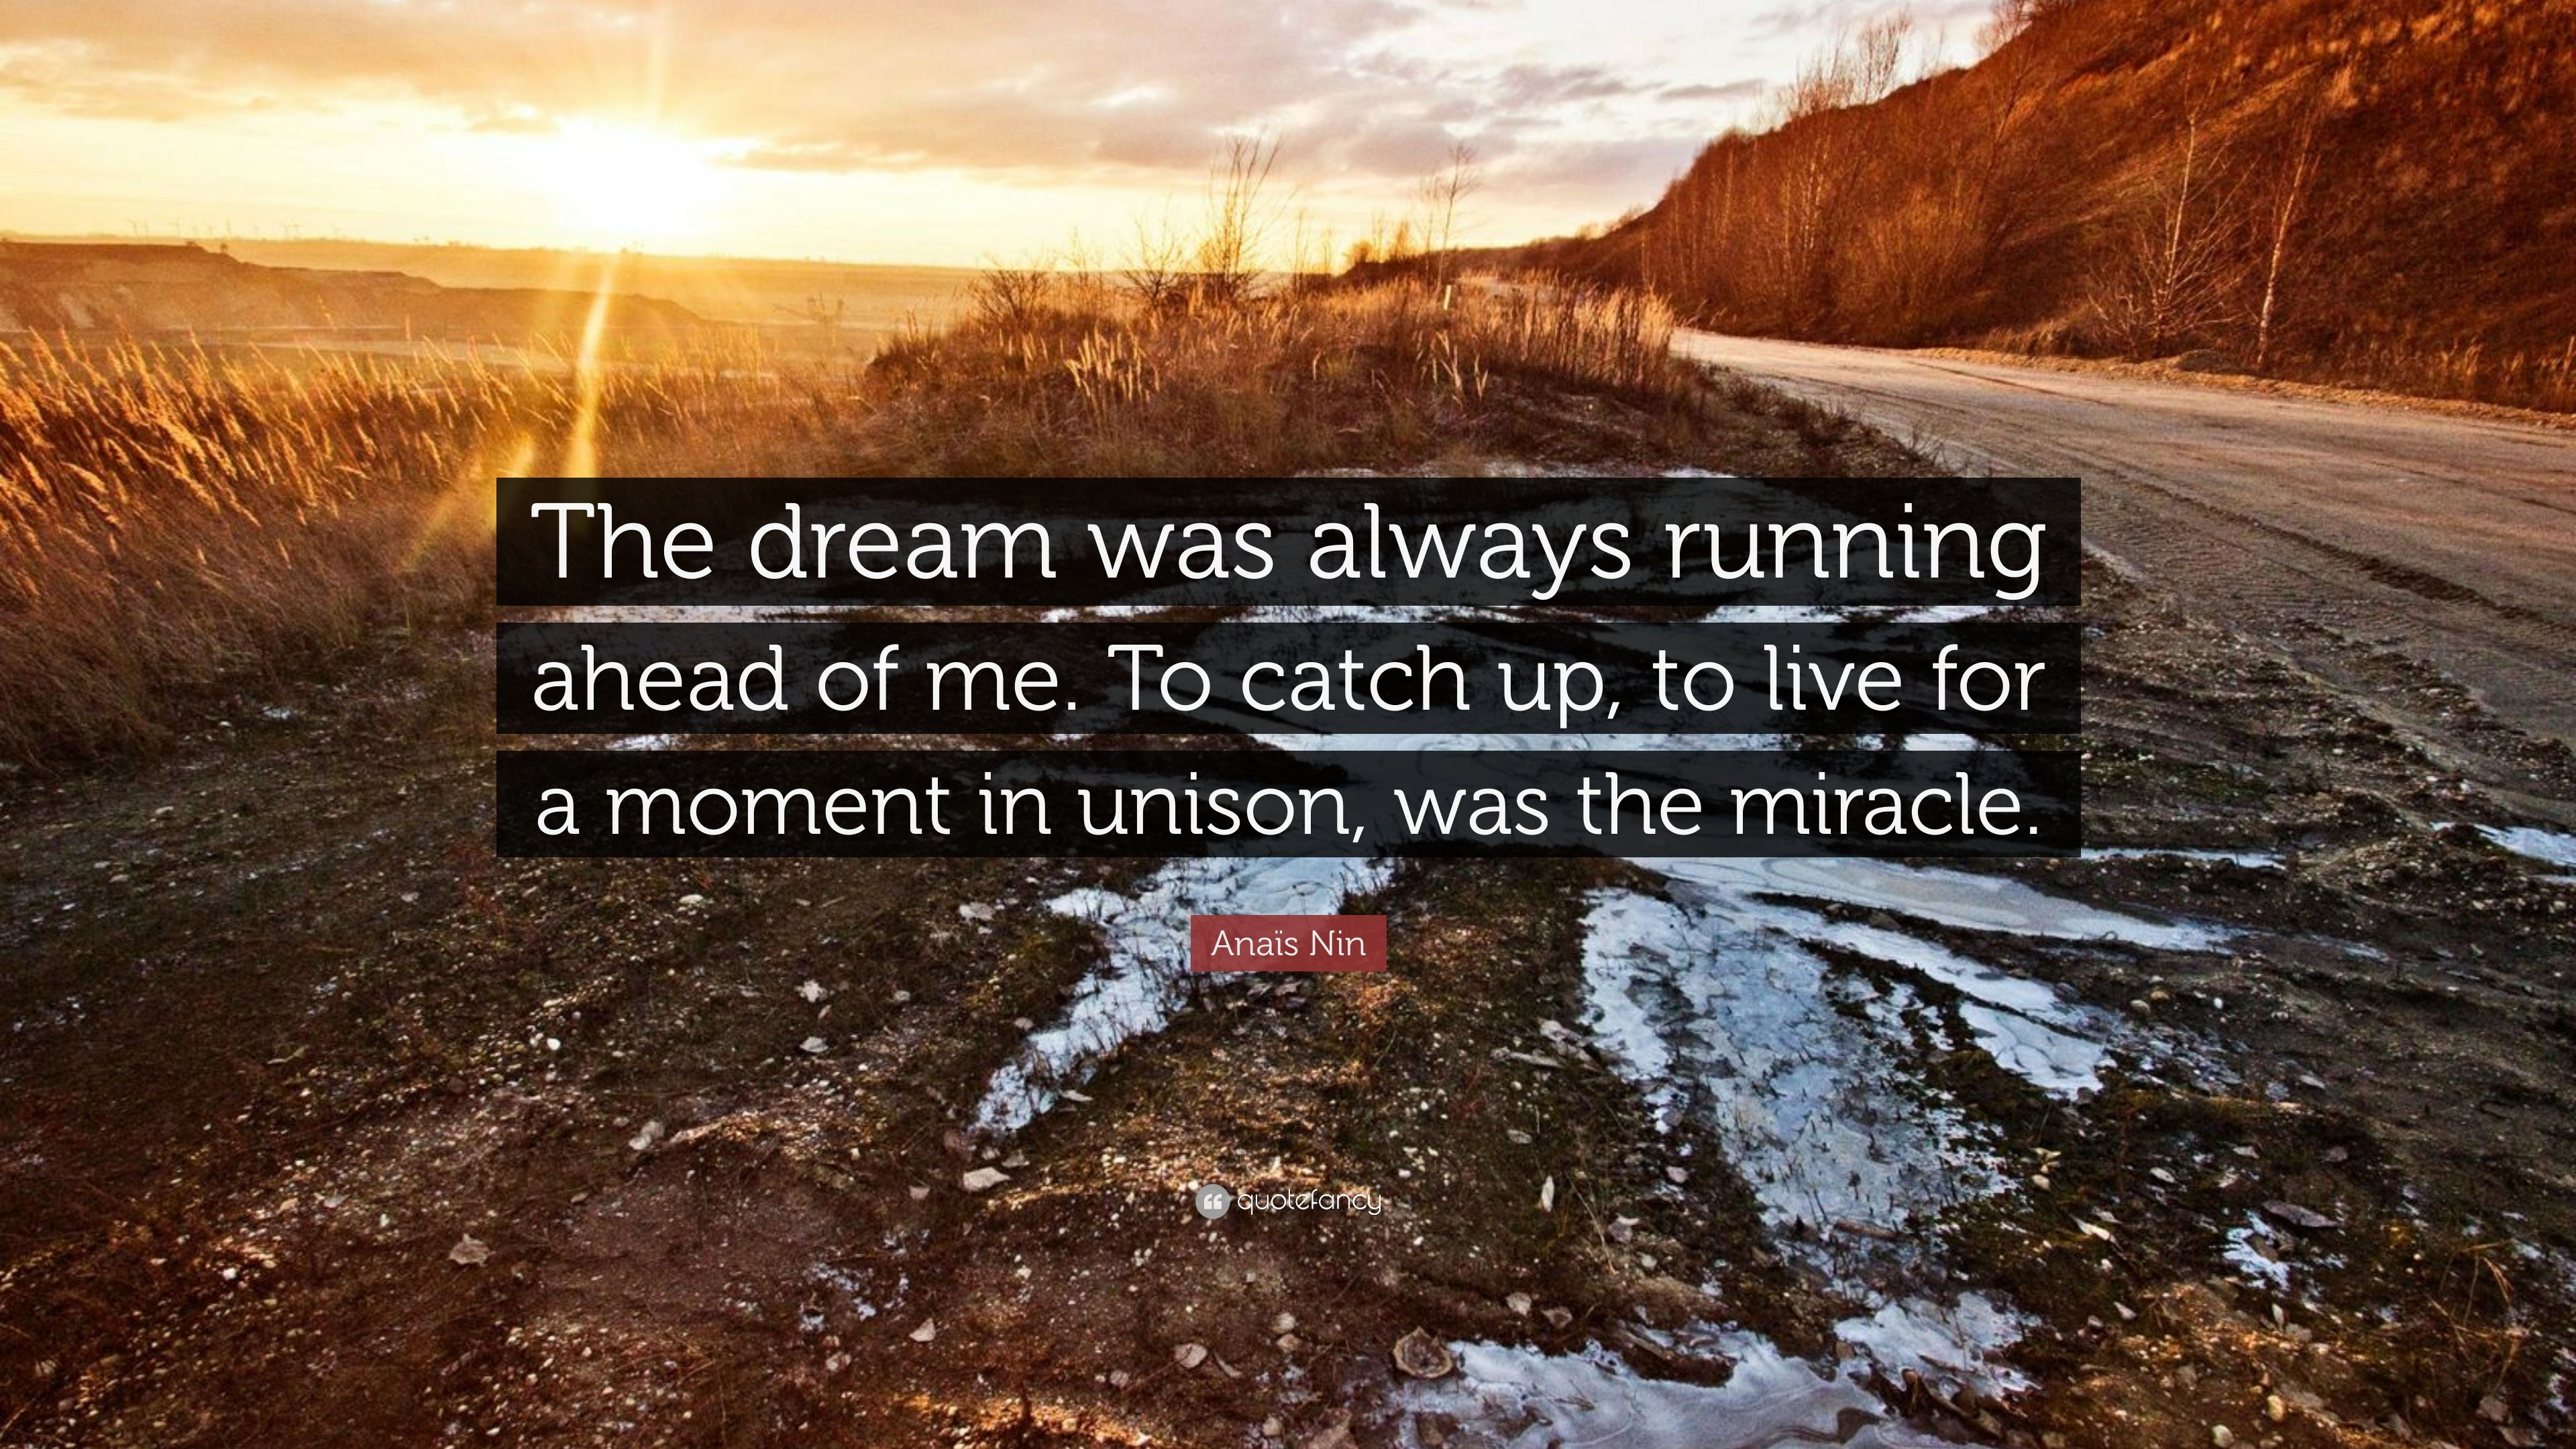 Anaïs Nin Quote: U201cThe Dream Was Always Running Ahead Of Me. To Catch